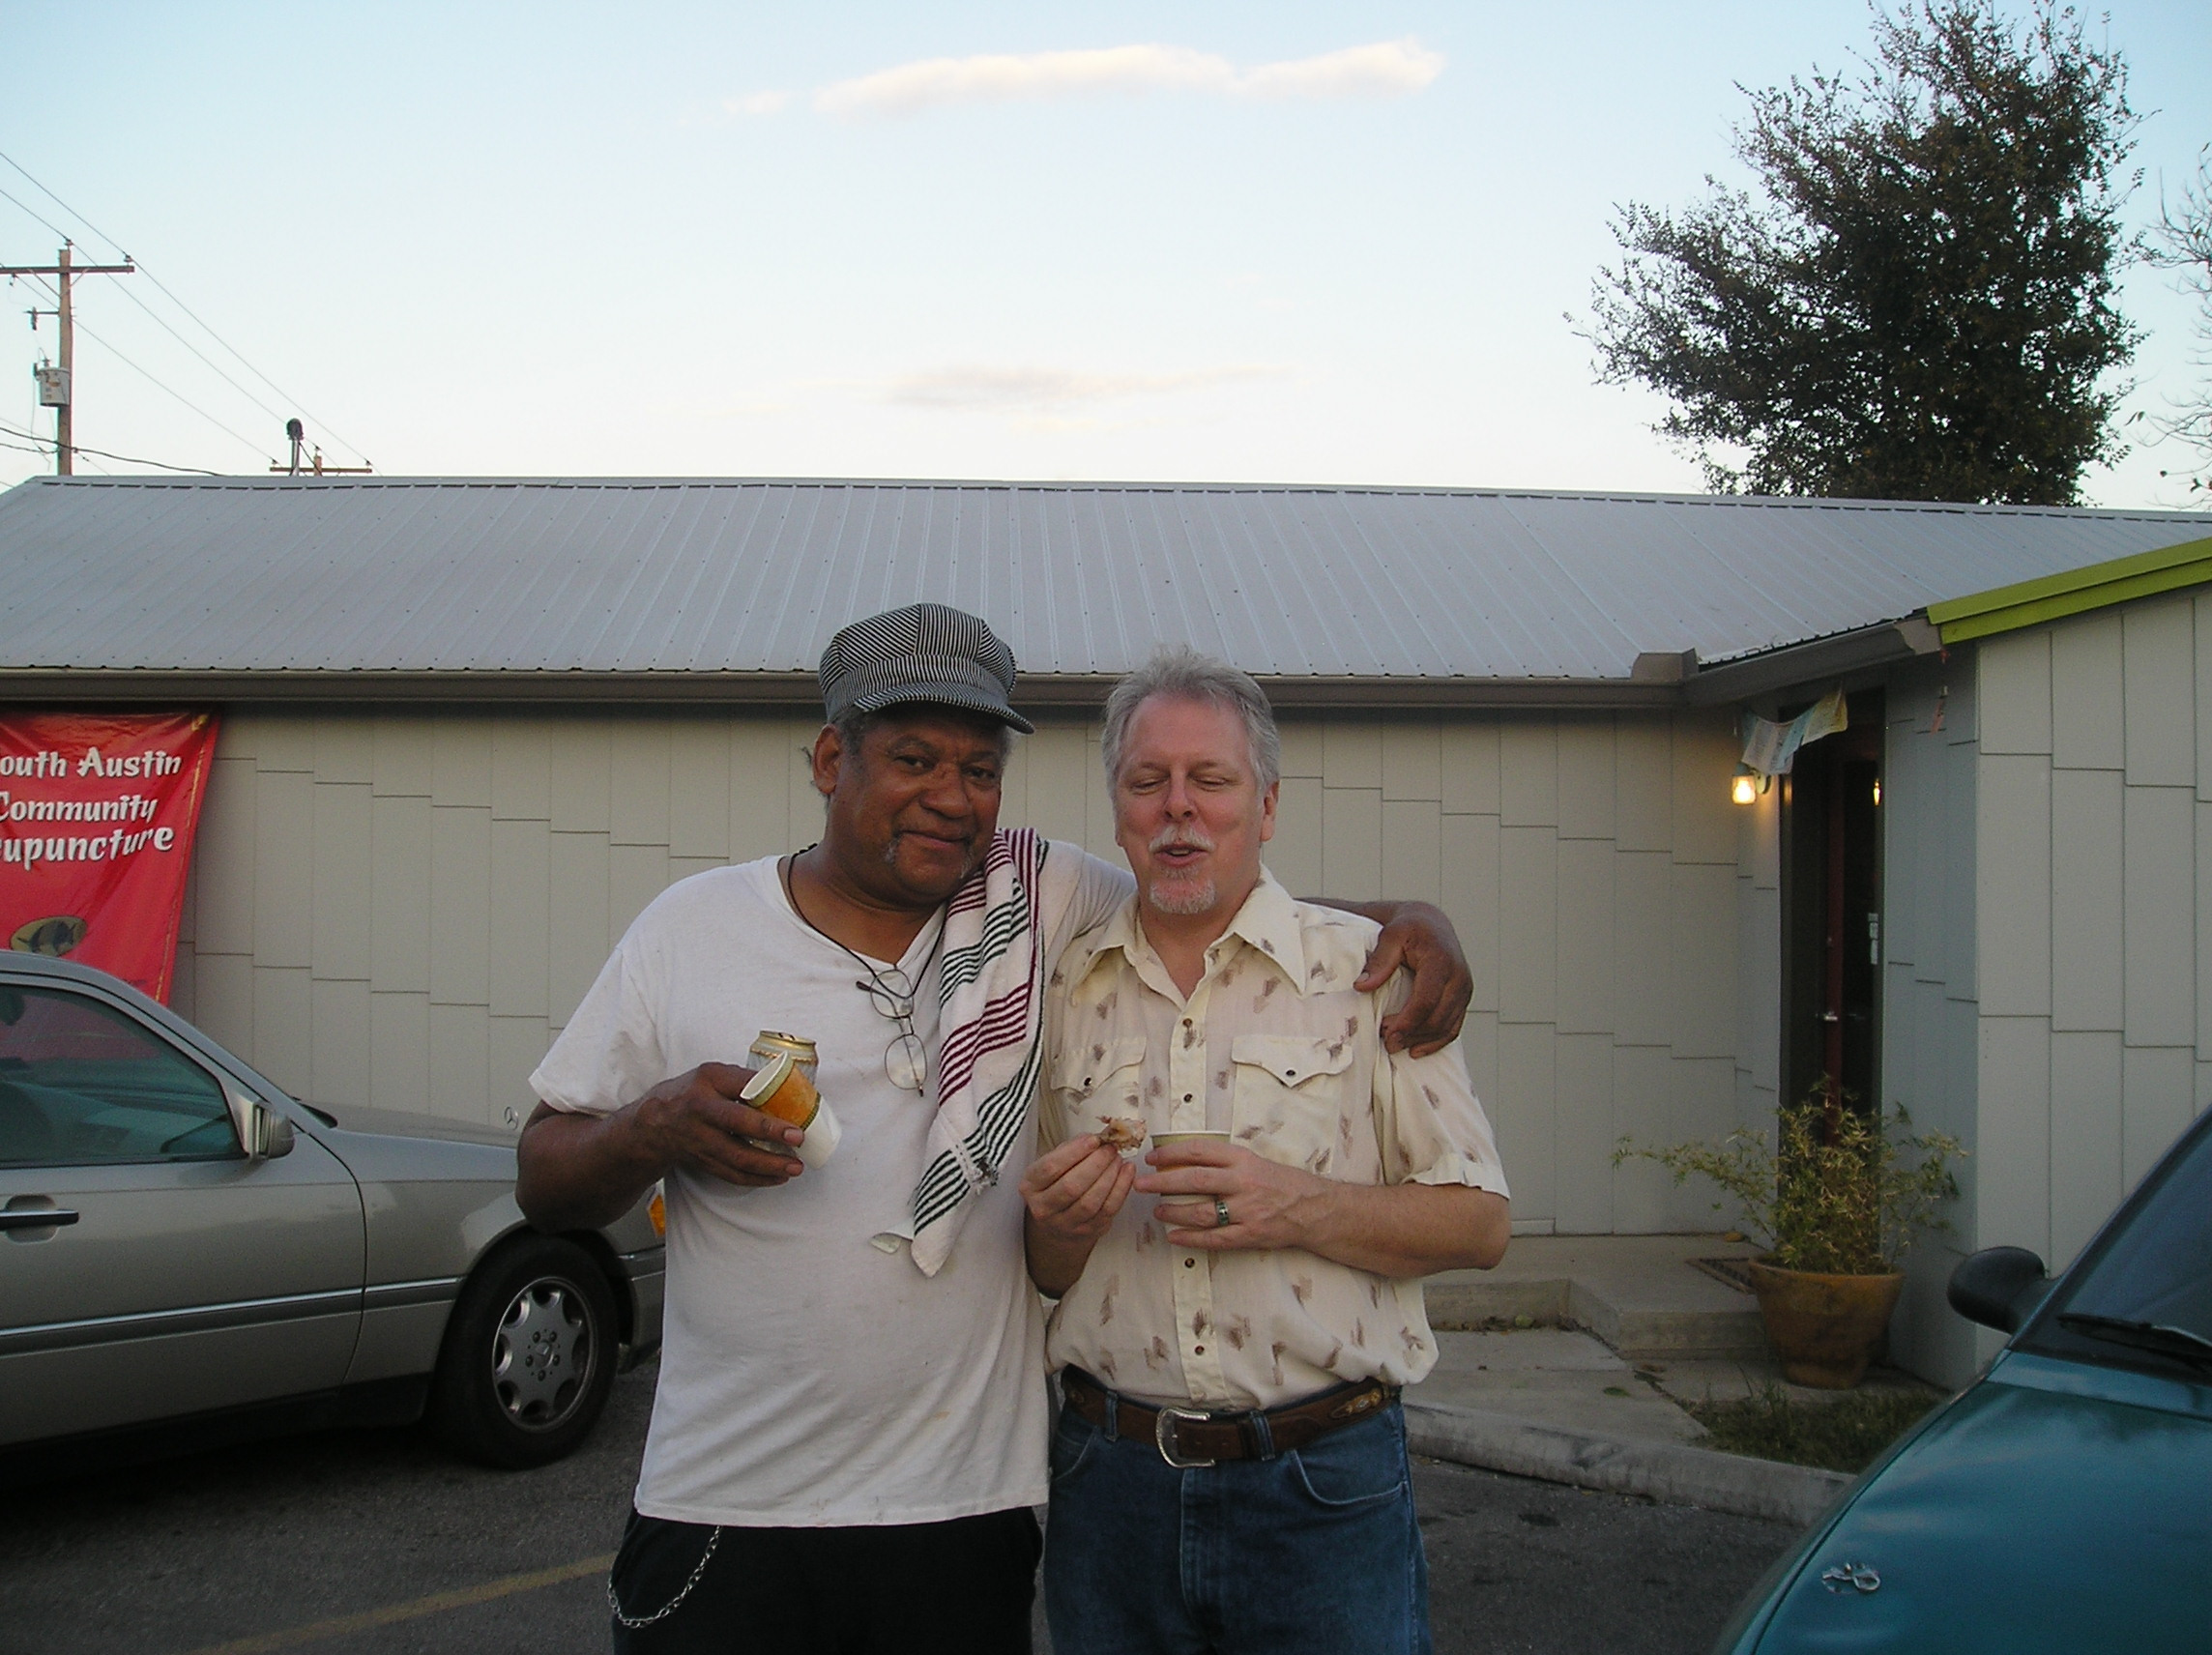 Musician friends Wallace Hawkins and Steve Carter celebrate at our 1st anniverssary.